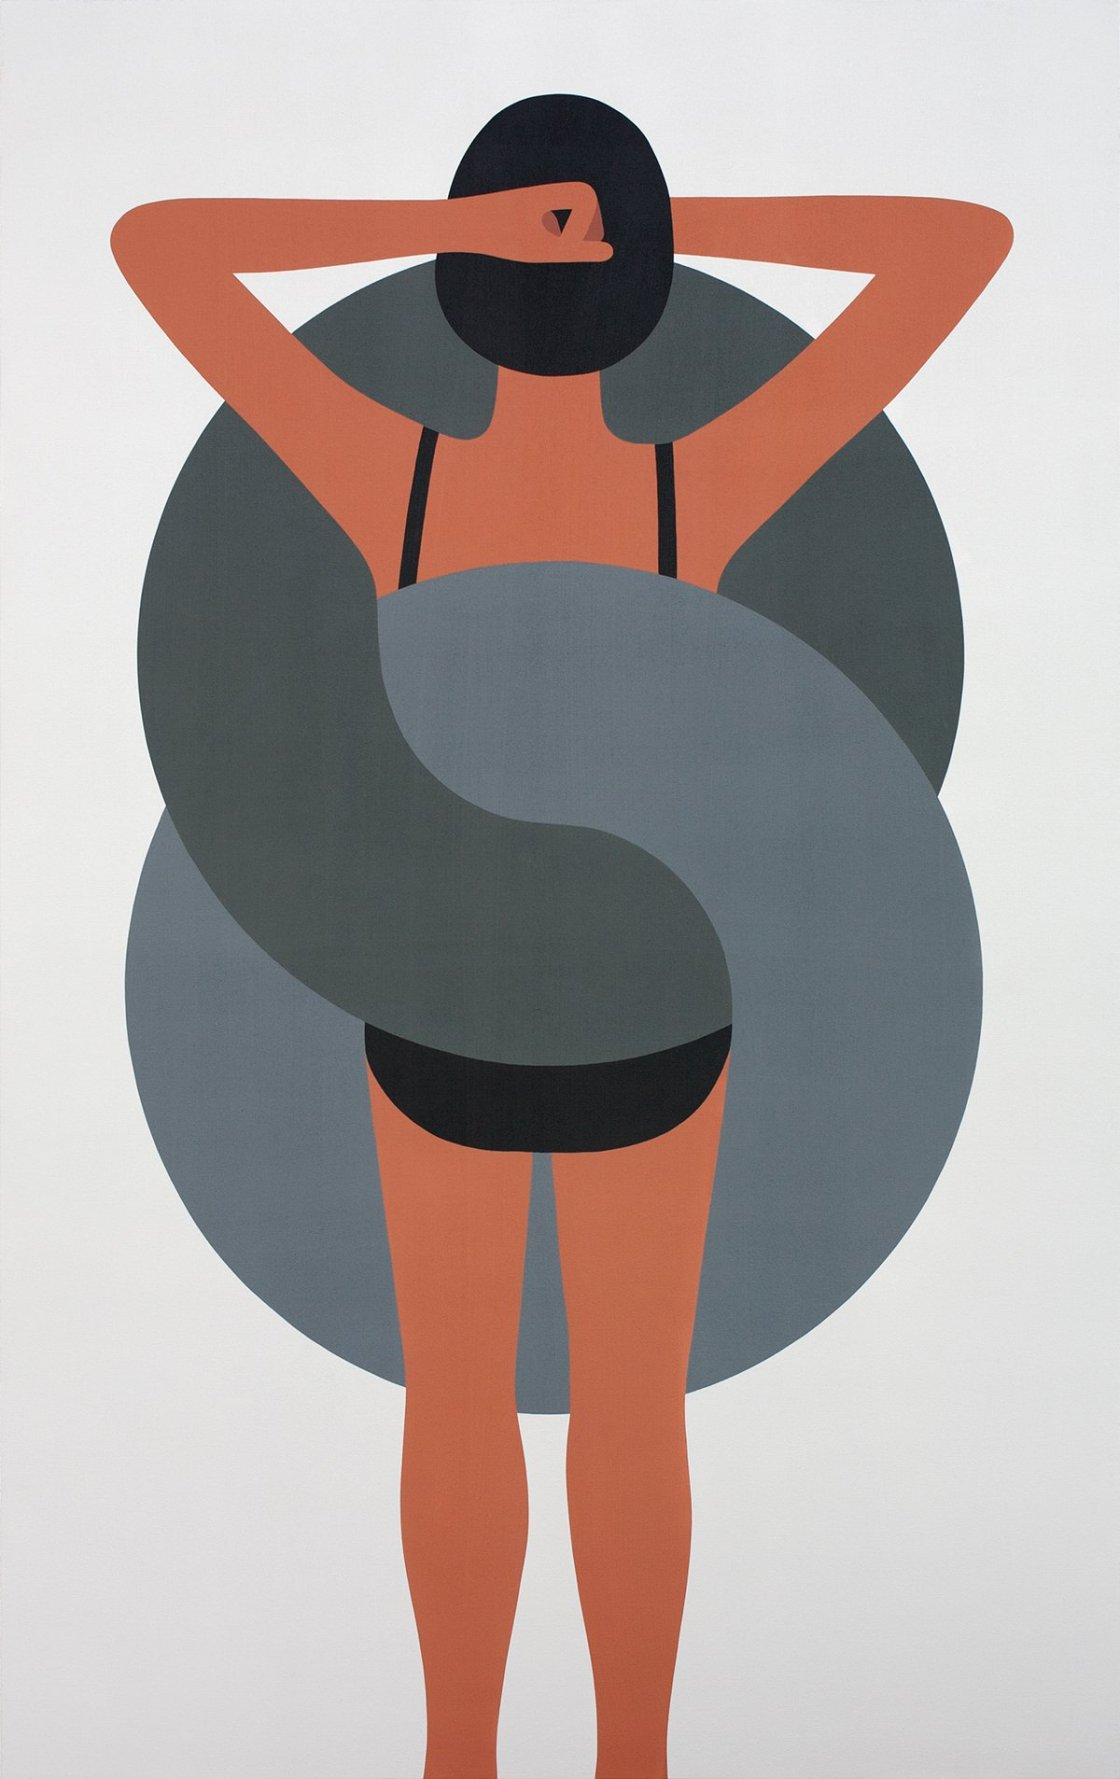 geoff_mcfetridge_paintings-designplayground_06